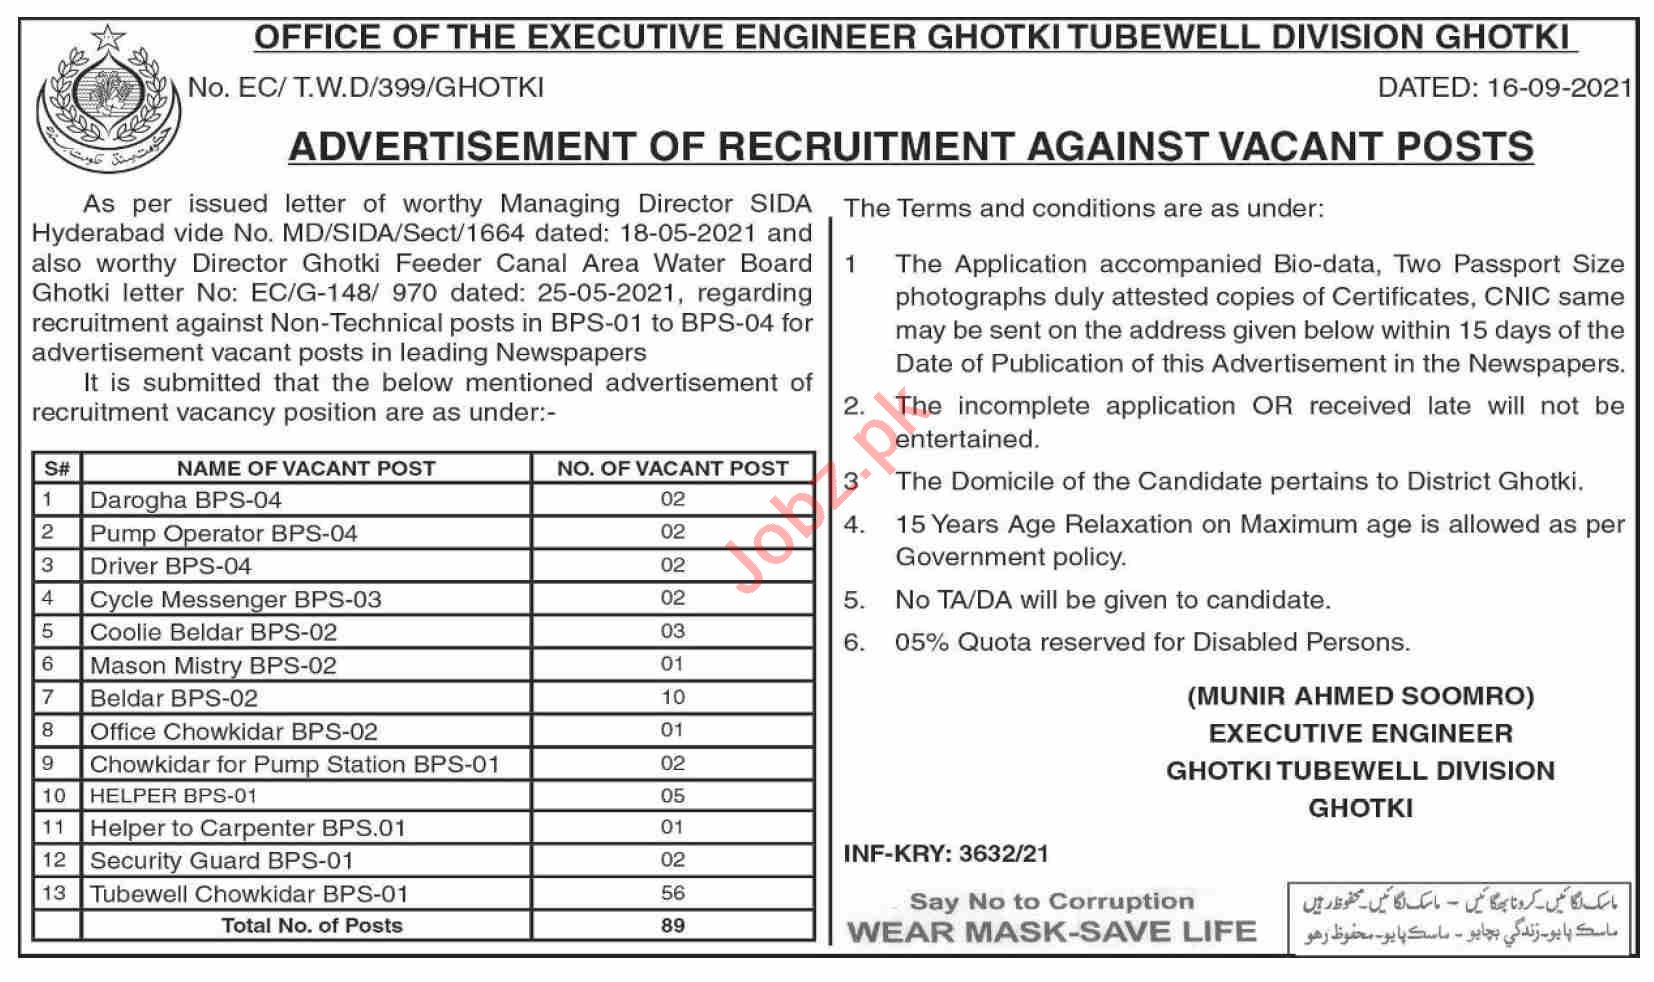 Irrigation Department Ghotki Tubewell Division Jobs 2021